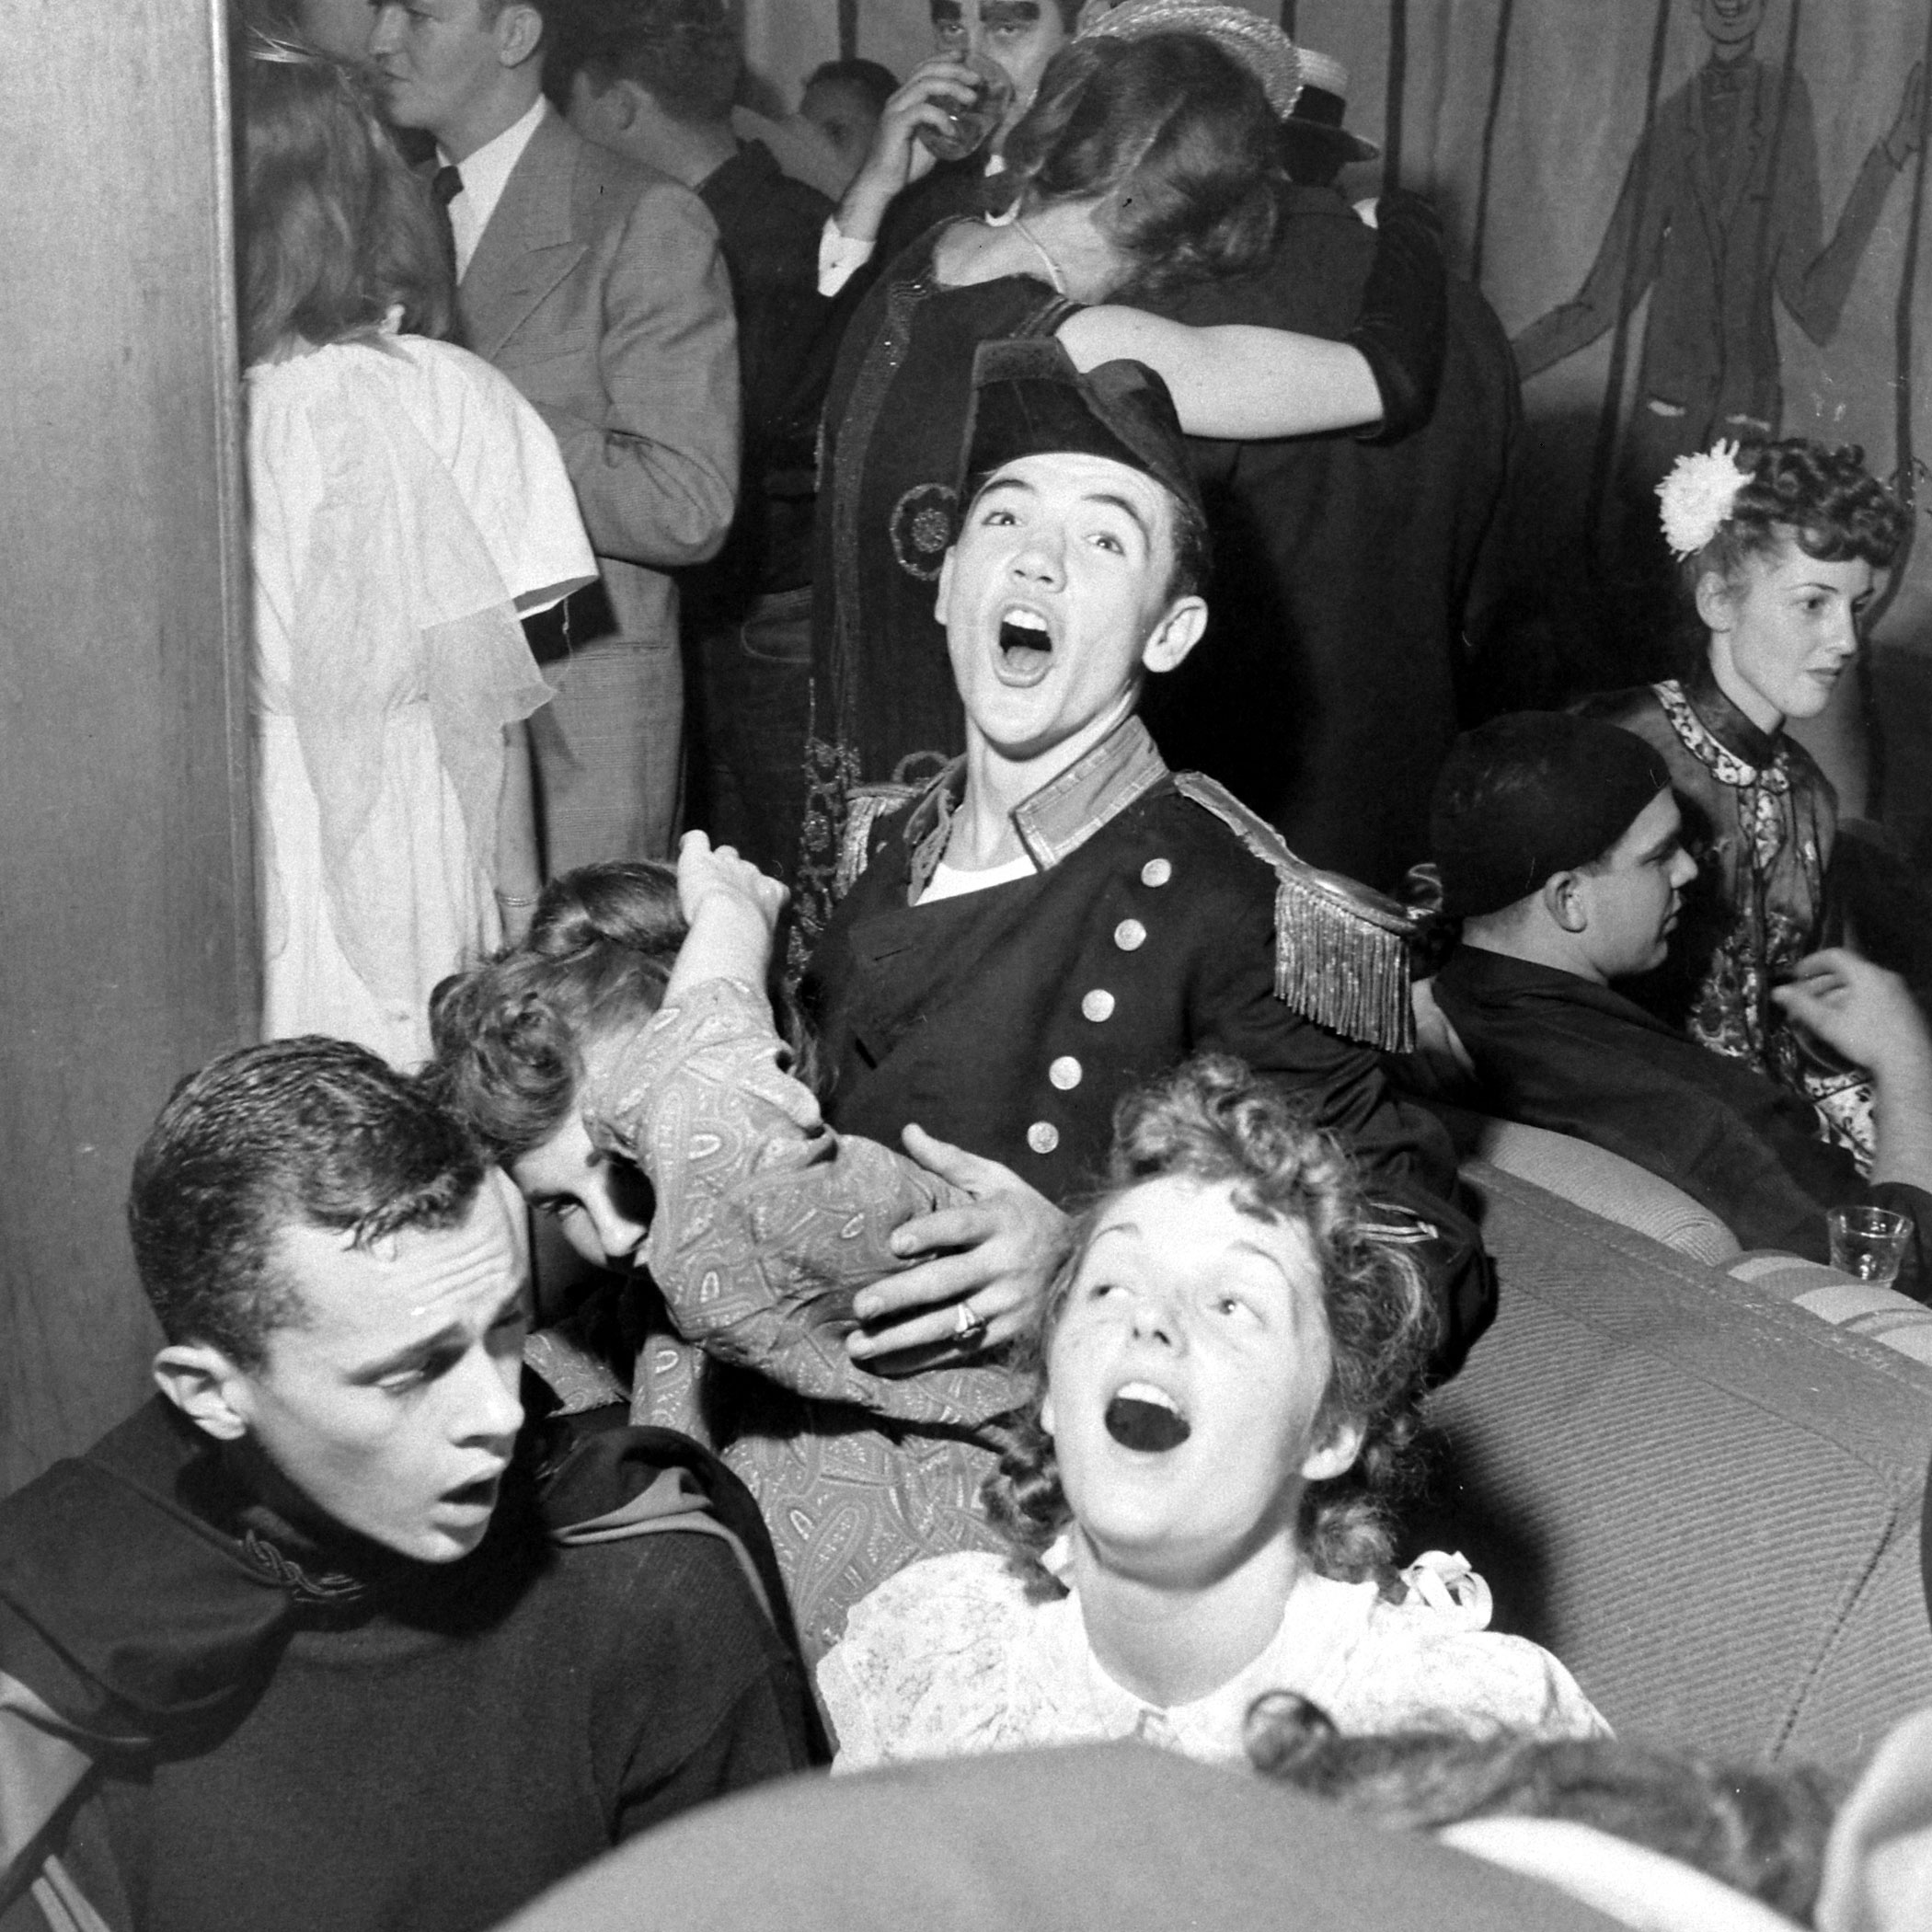 Sigma Alpha Epsilon Circus party at the University of California, Los Angeles in 1946.